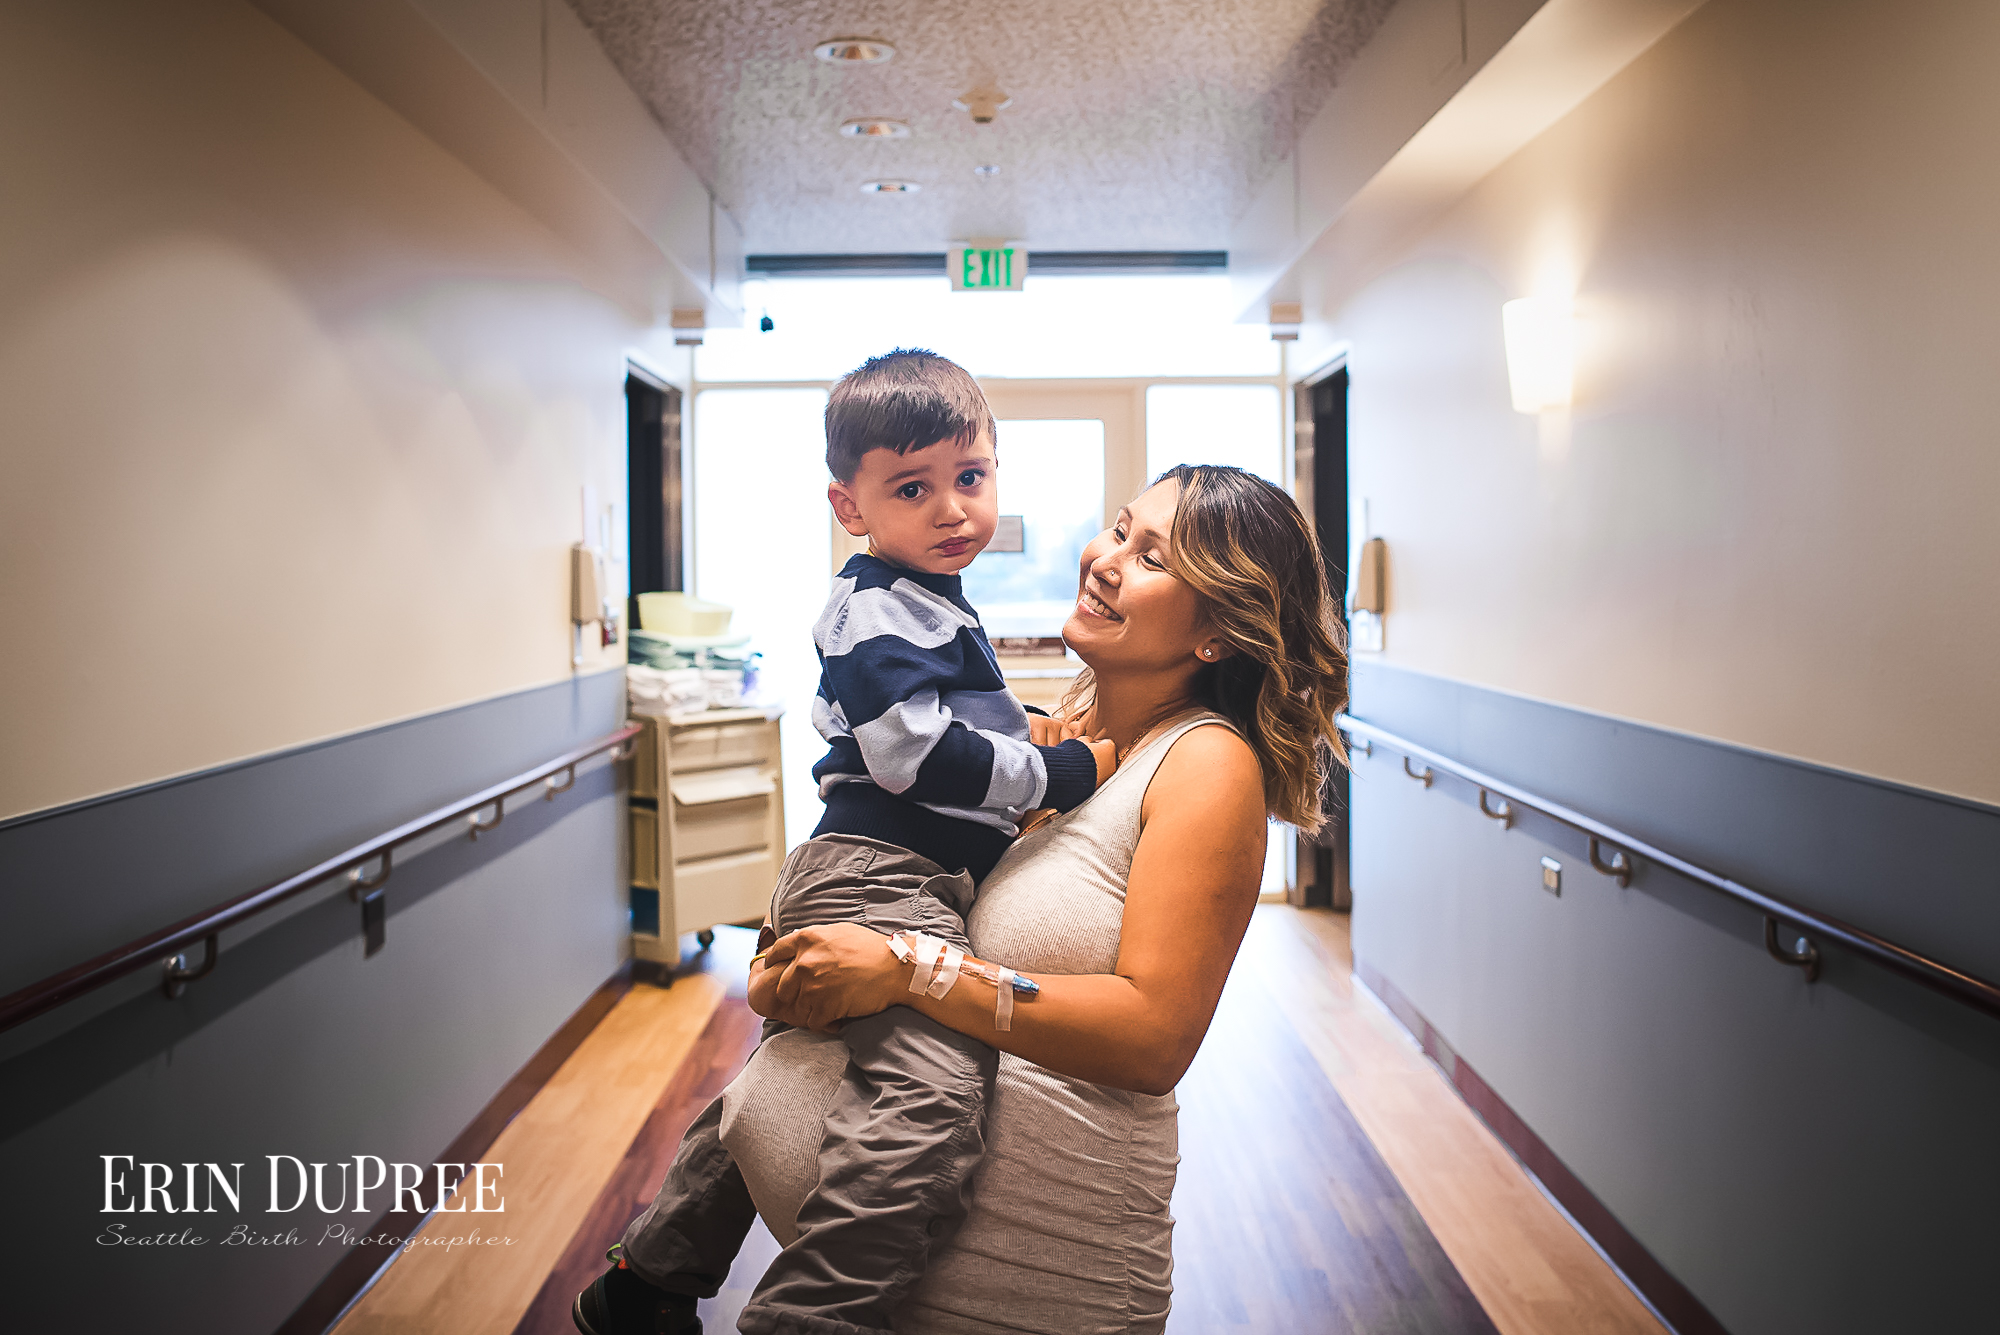 Pregnant mom holding son in hallway by Seattle Birth Photographer